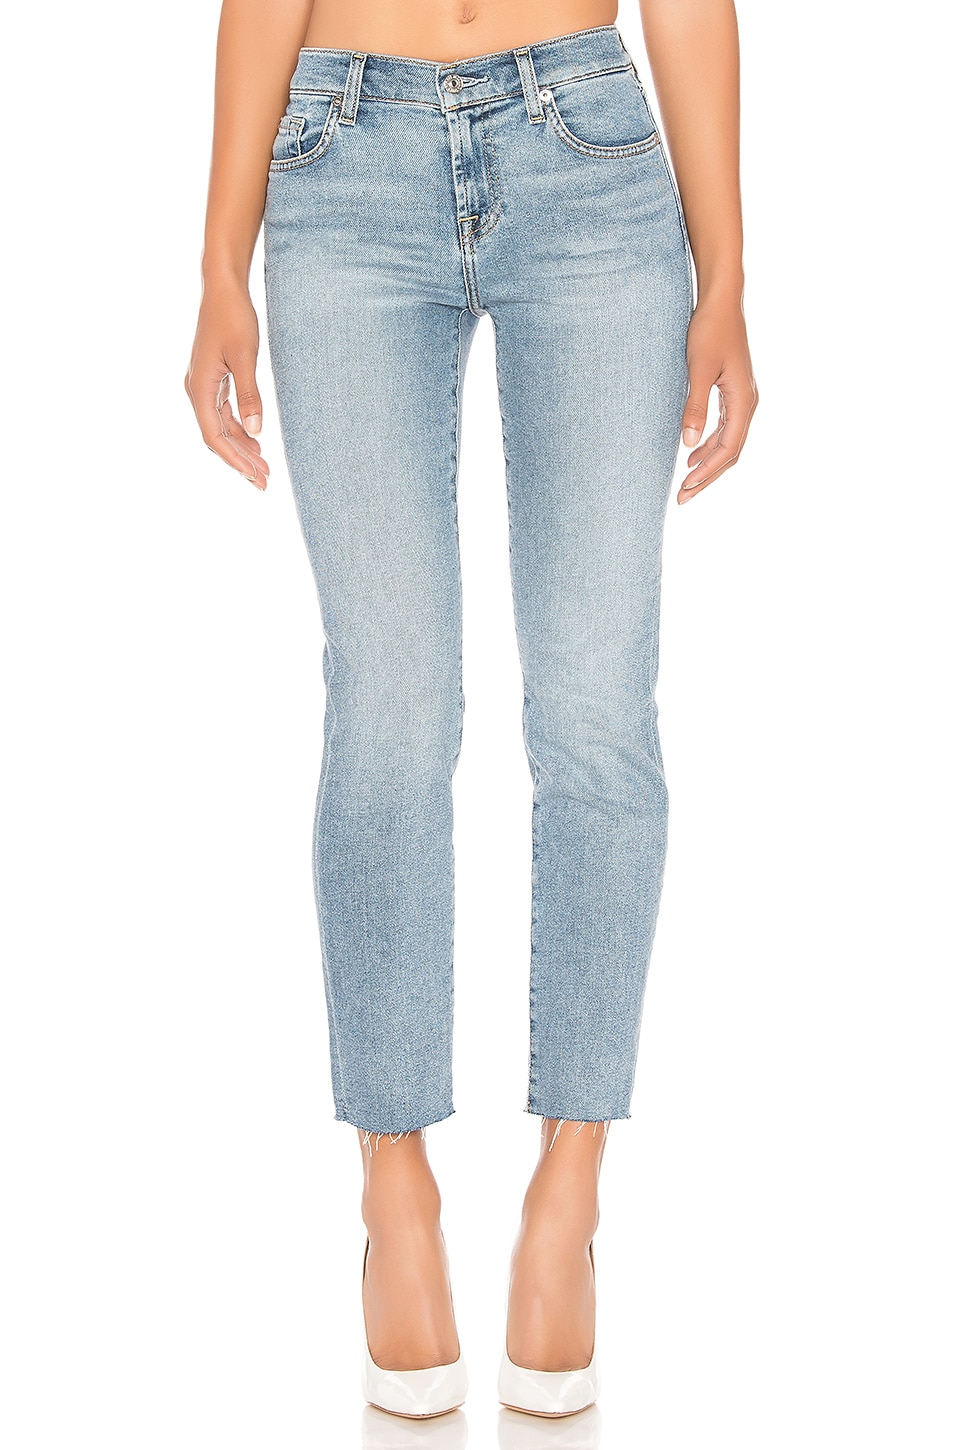 7 For All Mankind Roxanne Ankle in Luxe Vintage Flora